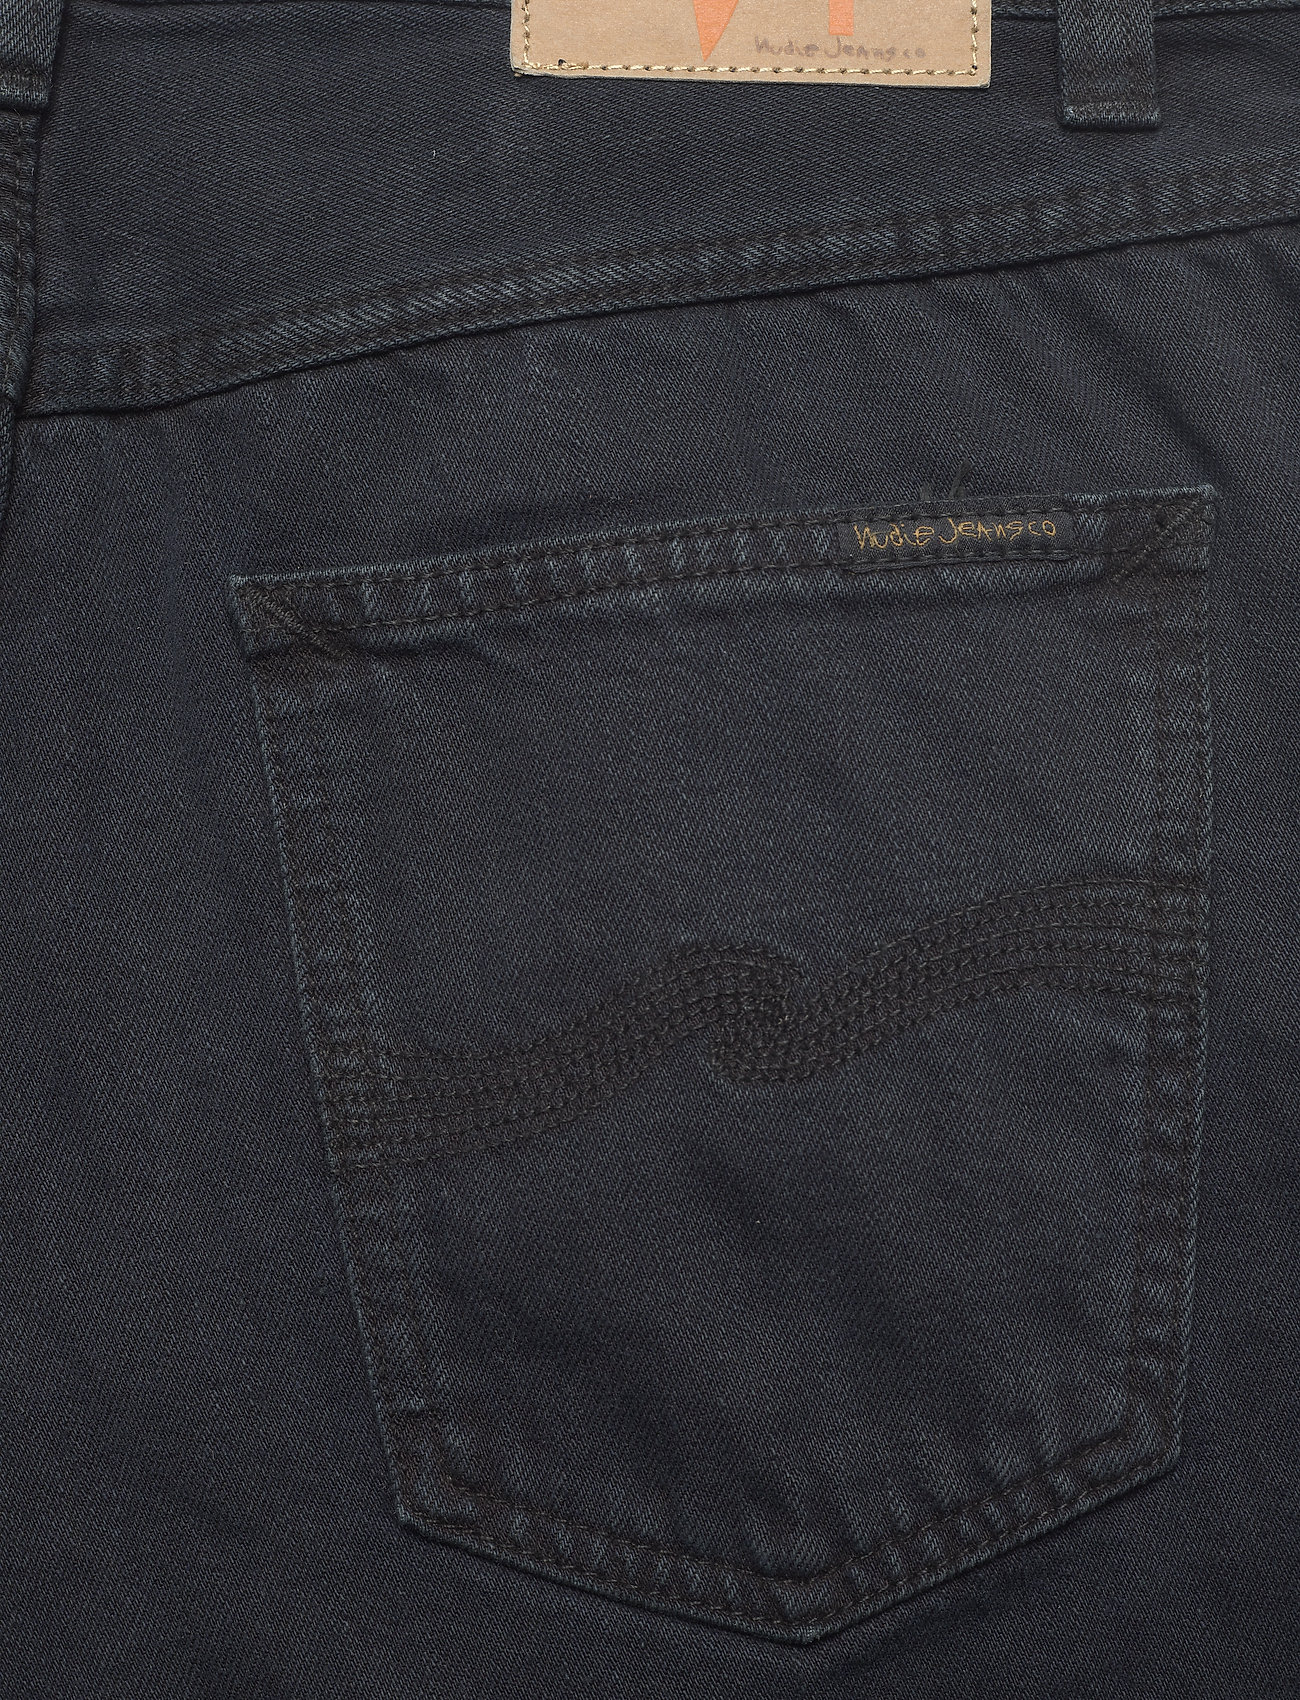 Nudie Jeans - Gritty Jackson - regular jeans - black forest - 4